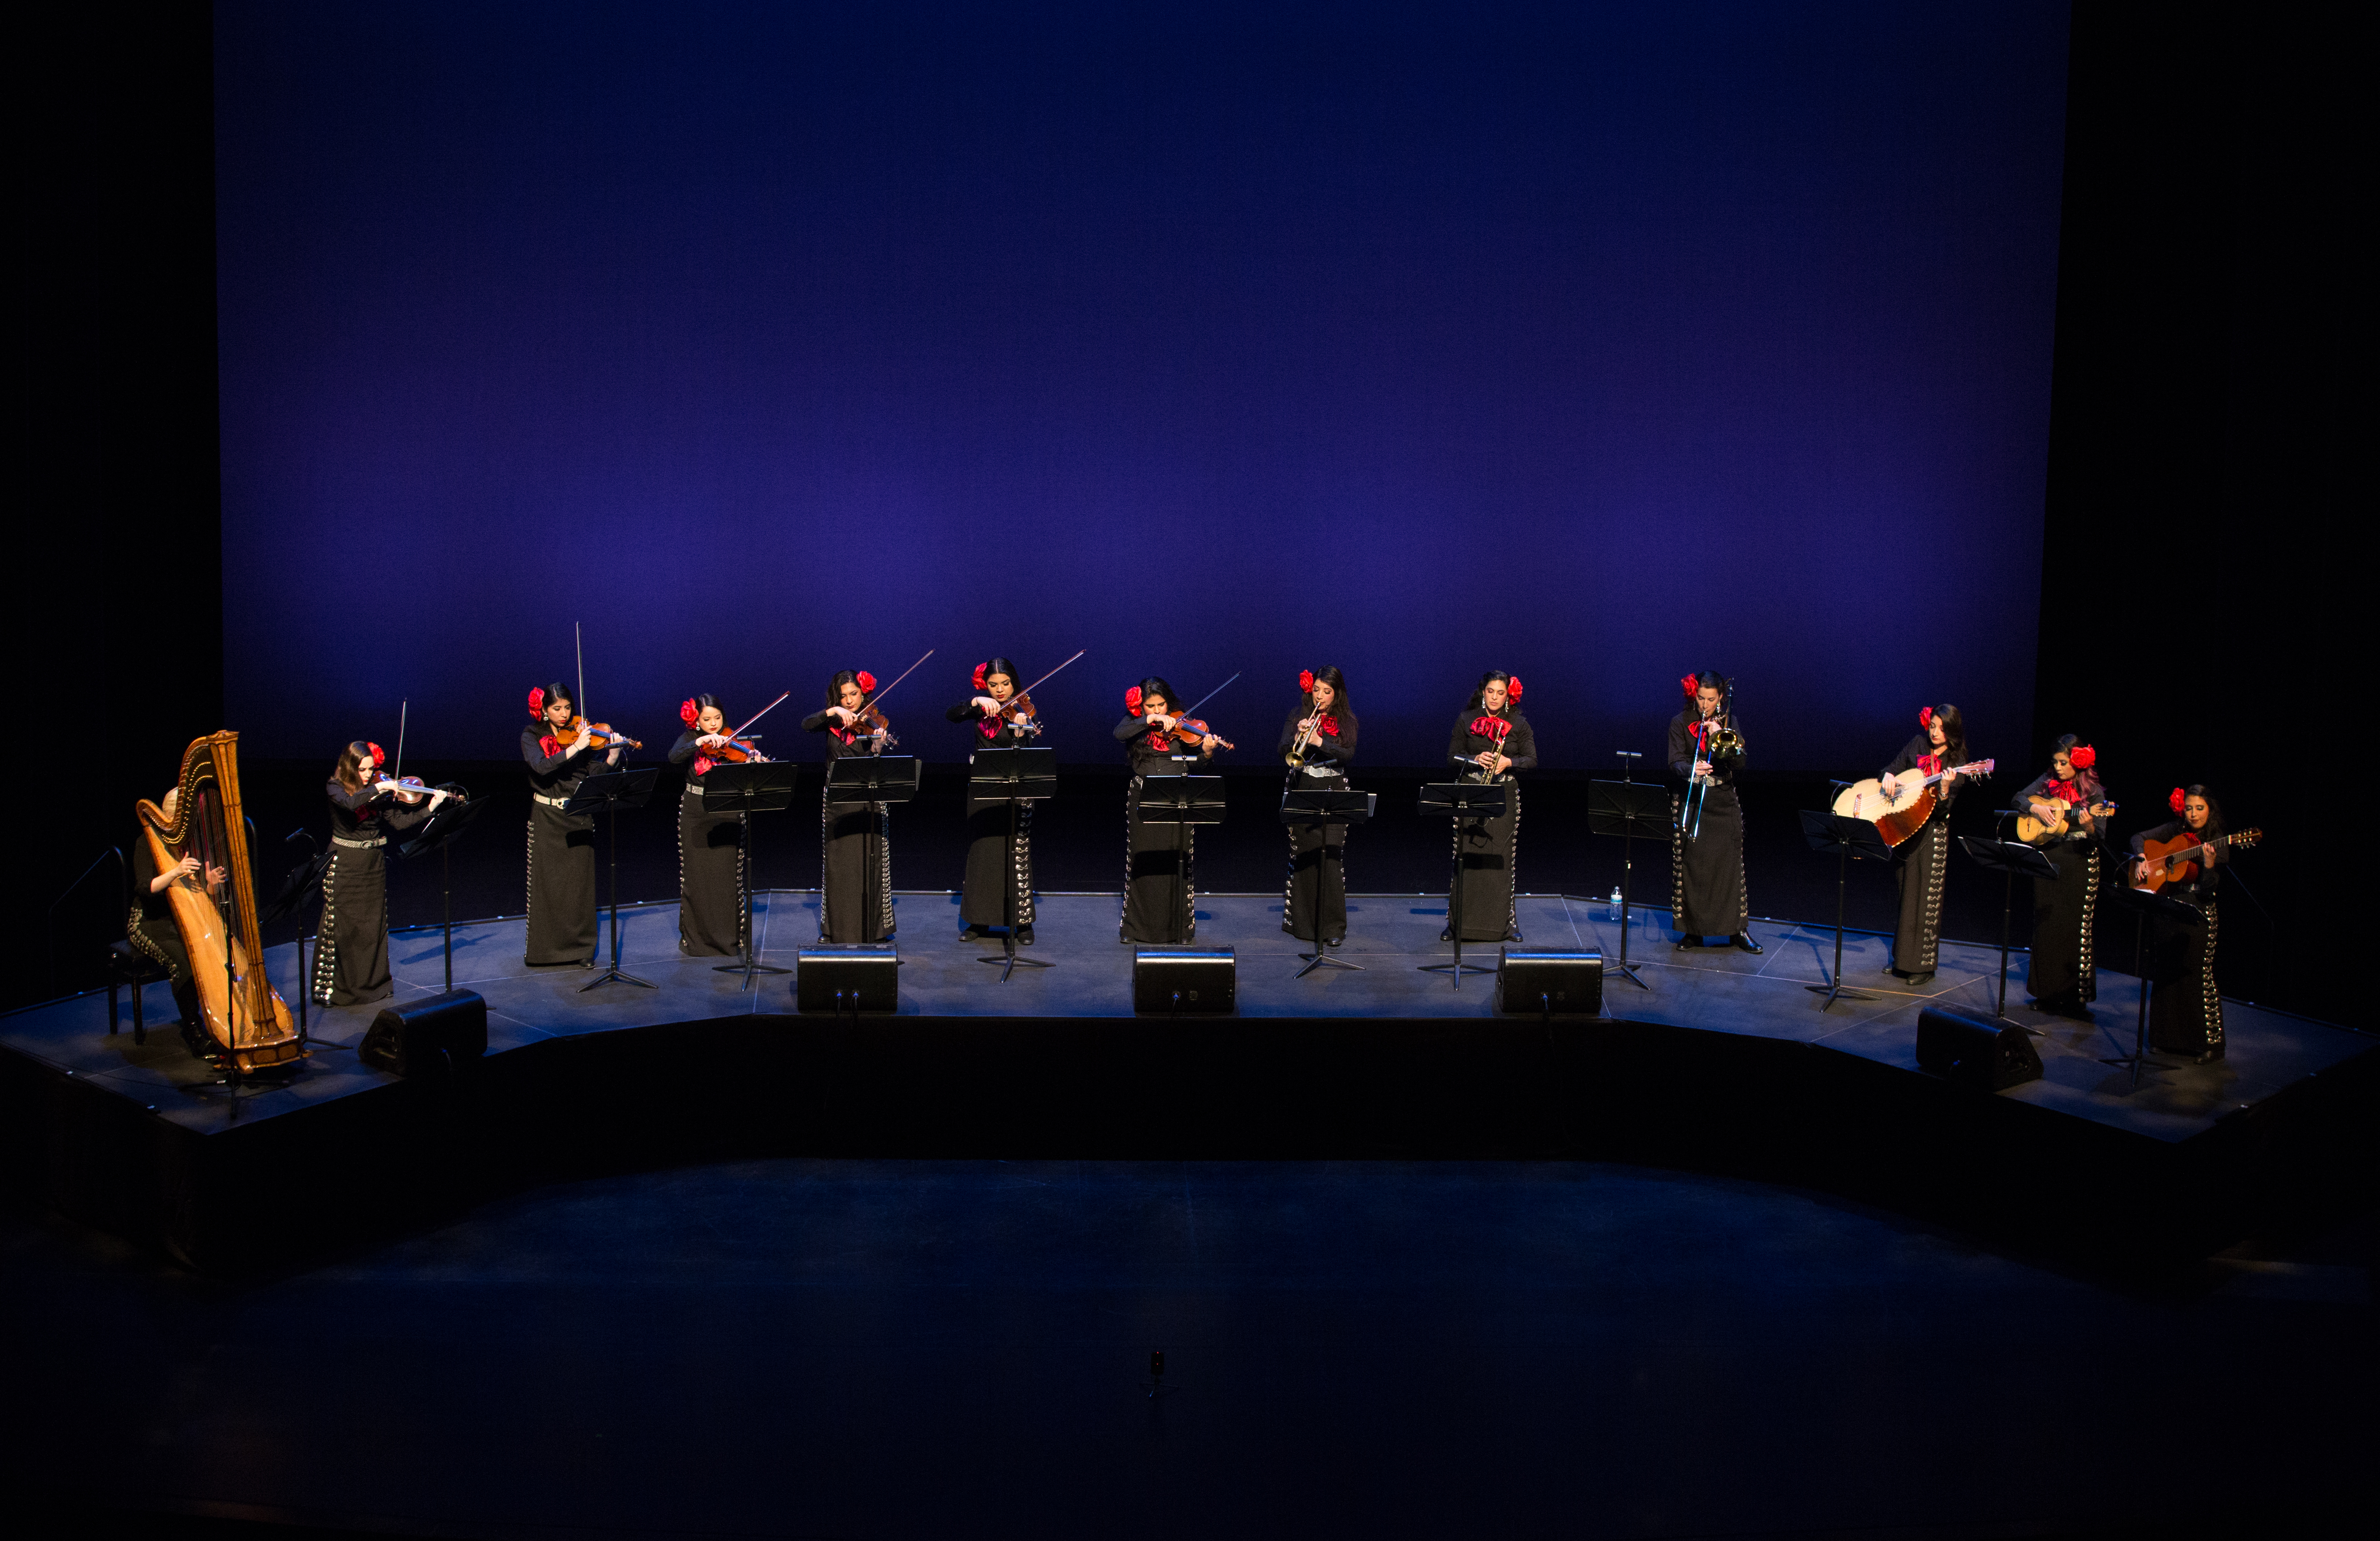 Photo of Mariachi Rosas Divinas at Tuesday night's 'MARIACHI WAGNER' performance at Moody Performance Hall. The show was part of the Dallas Symphony Orchestra's SOLUNA Festival. Photo: Sylvia Elzafon